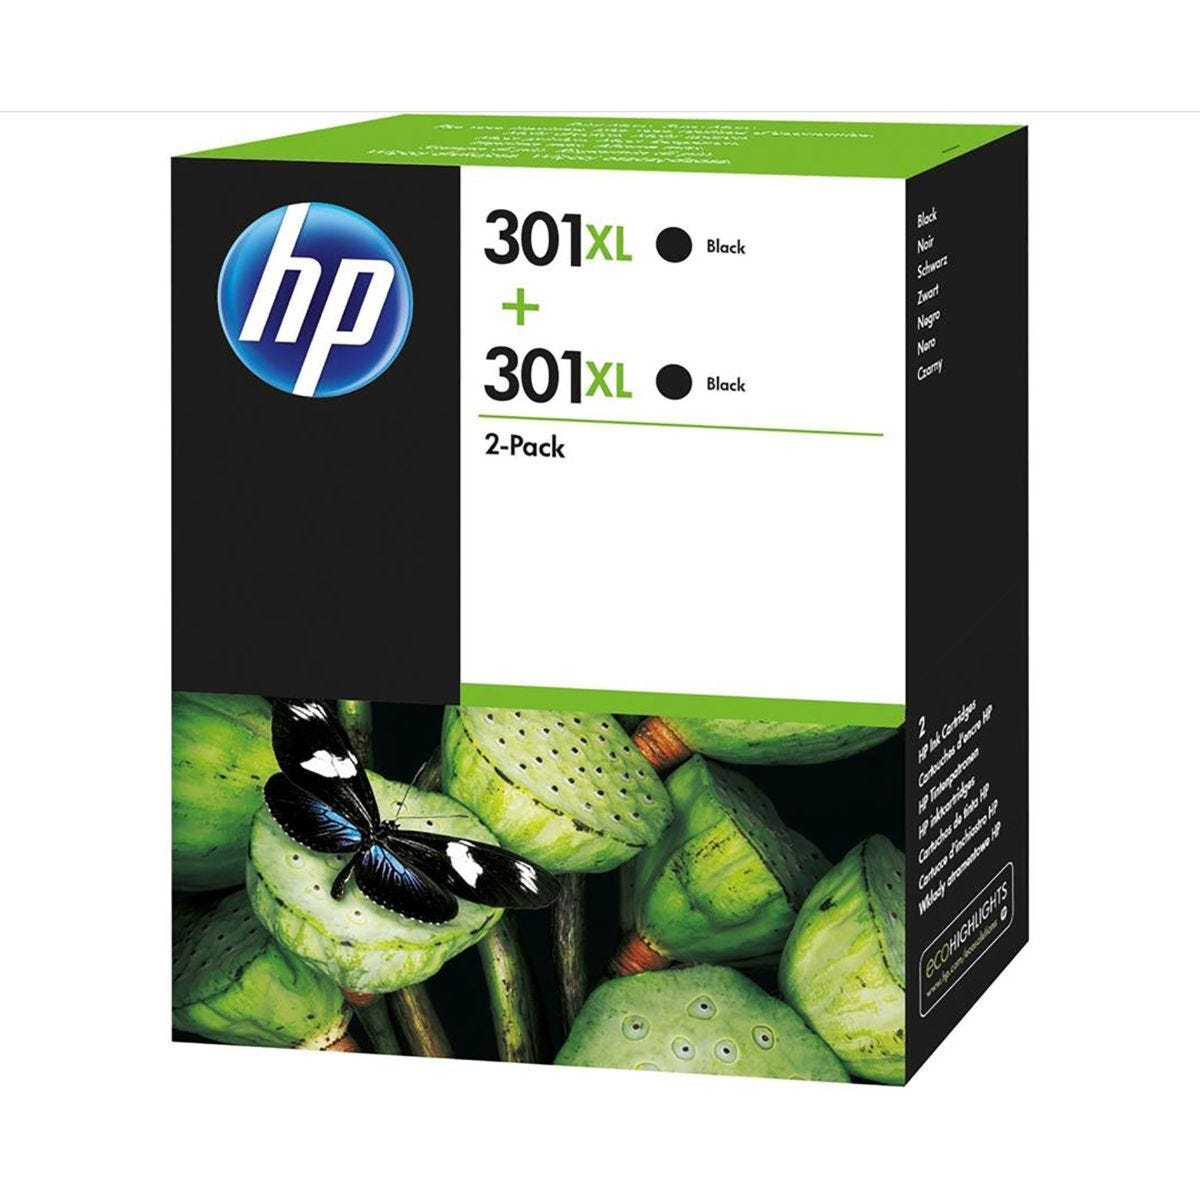 HP 301XL Twin Pack Ink Cartridge Black